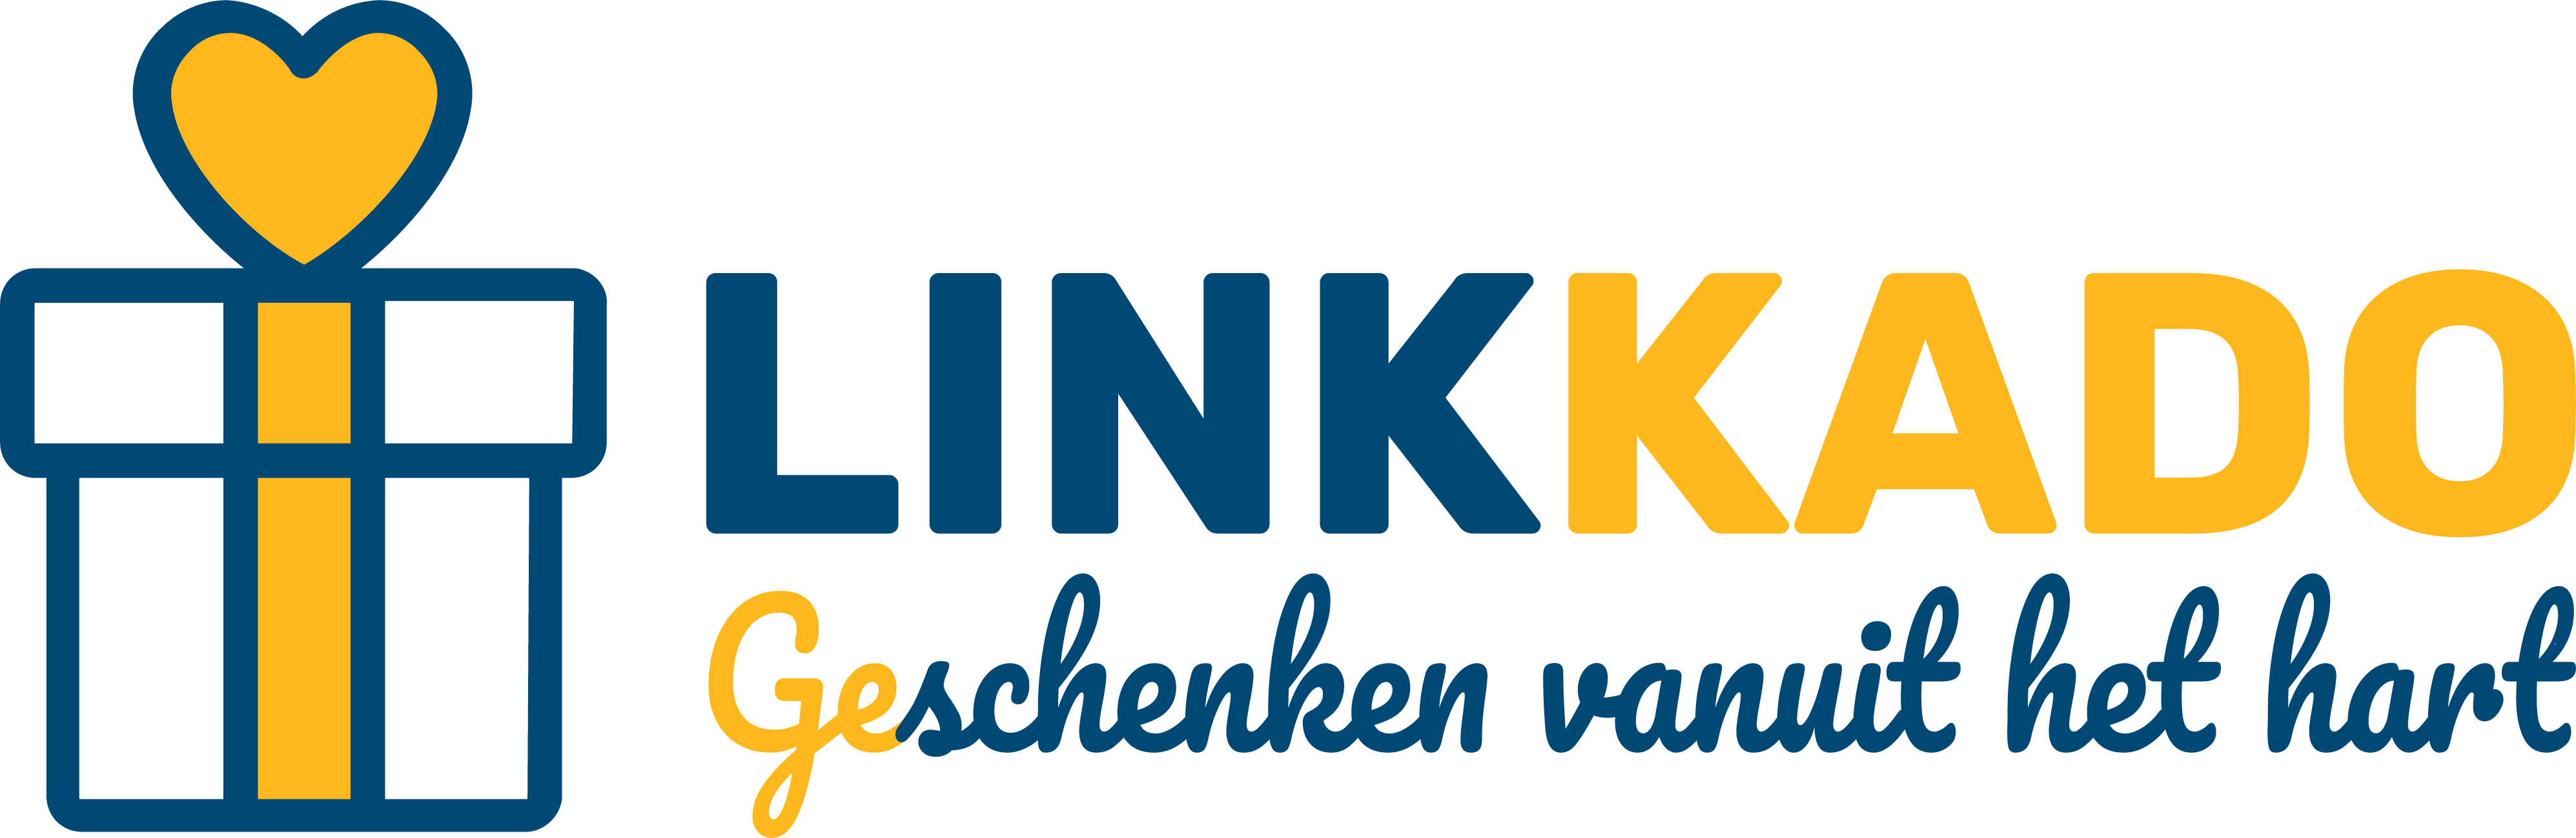 Logo linkkado